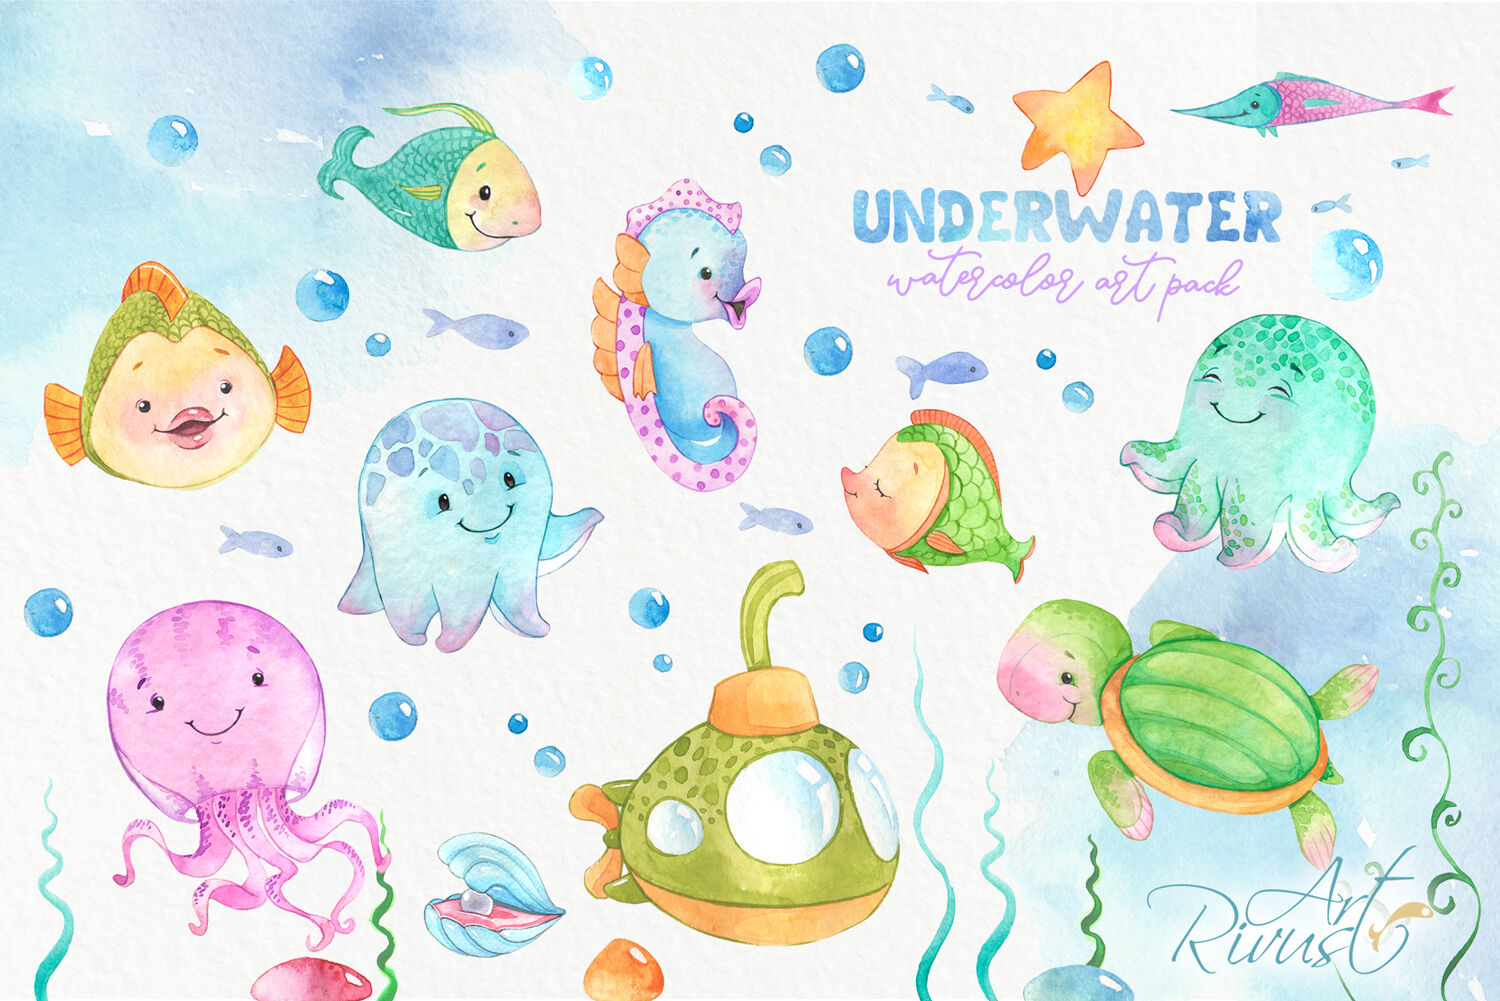 Mermaid and Underwater friends PNG watercolor clipart pack.